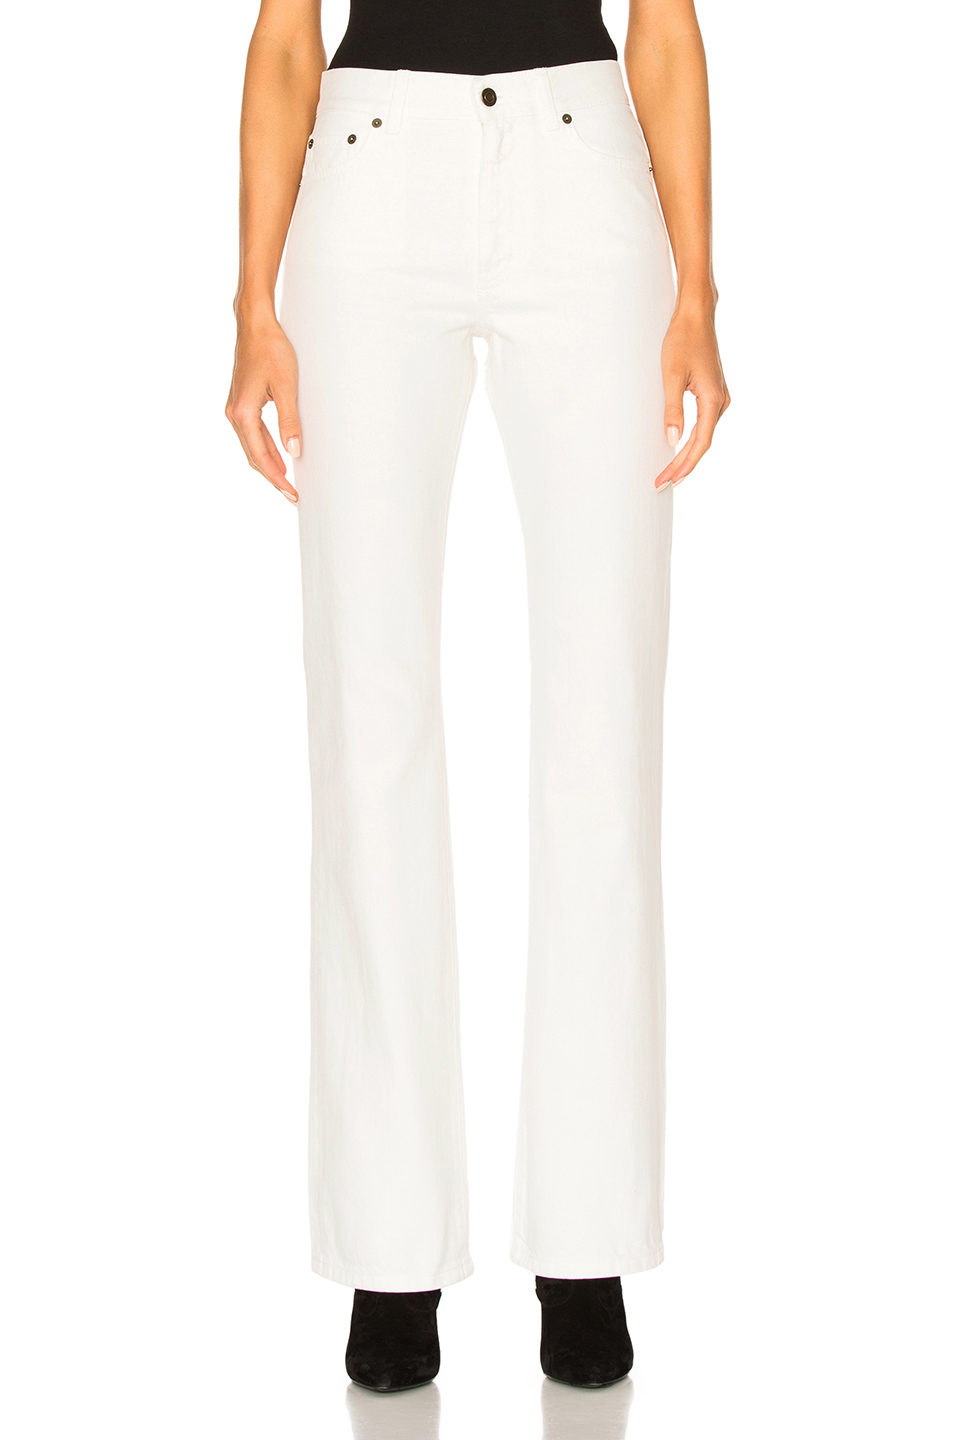 Saint Laurent Flare Jeans in White